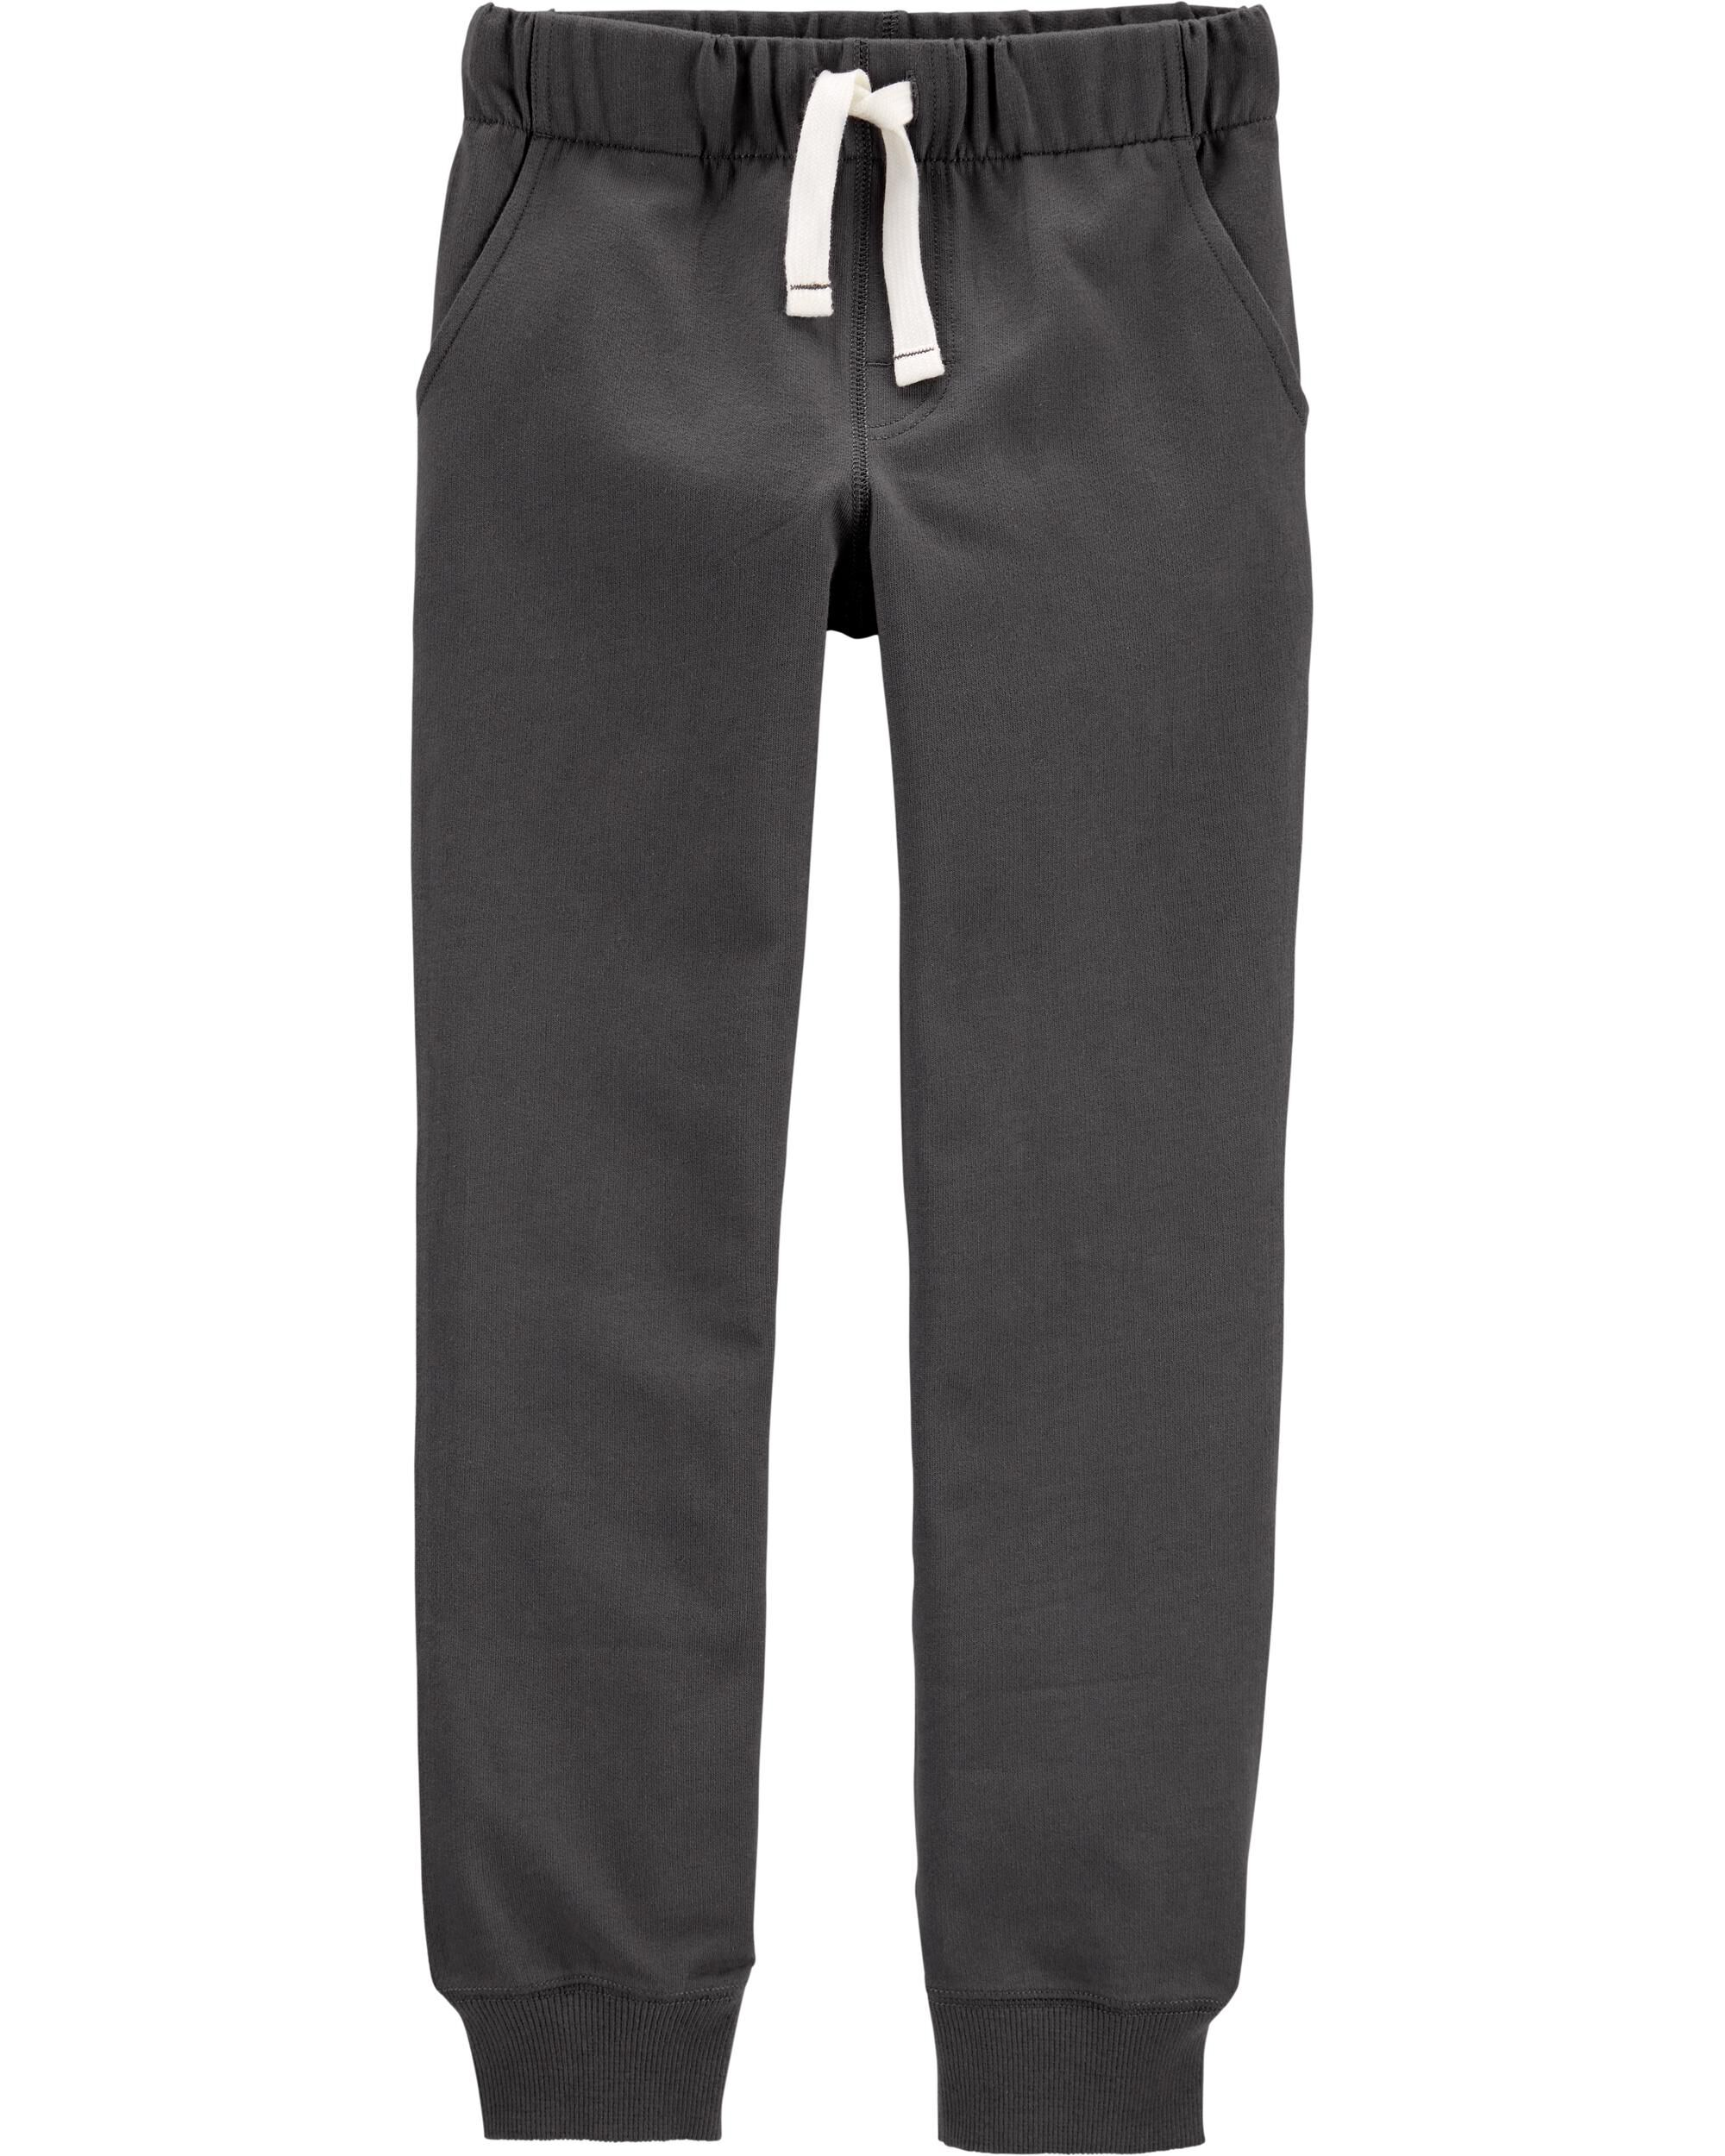 Carter/'s Infant Boys/' Pull-On Gray Knit Joggers Ankle Stripes NWT sweat pants